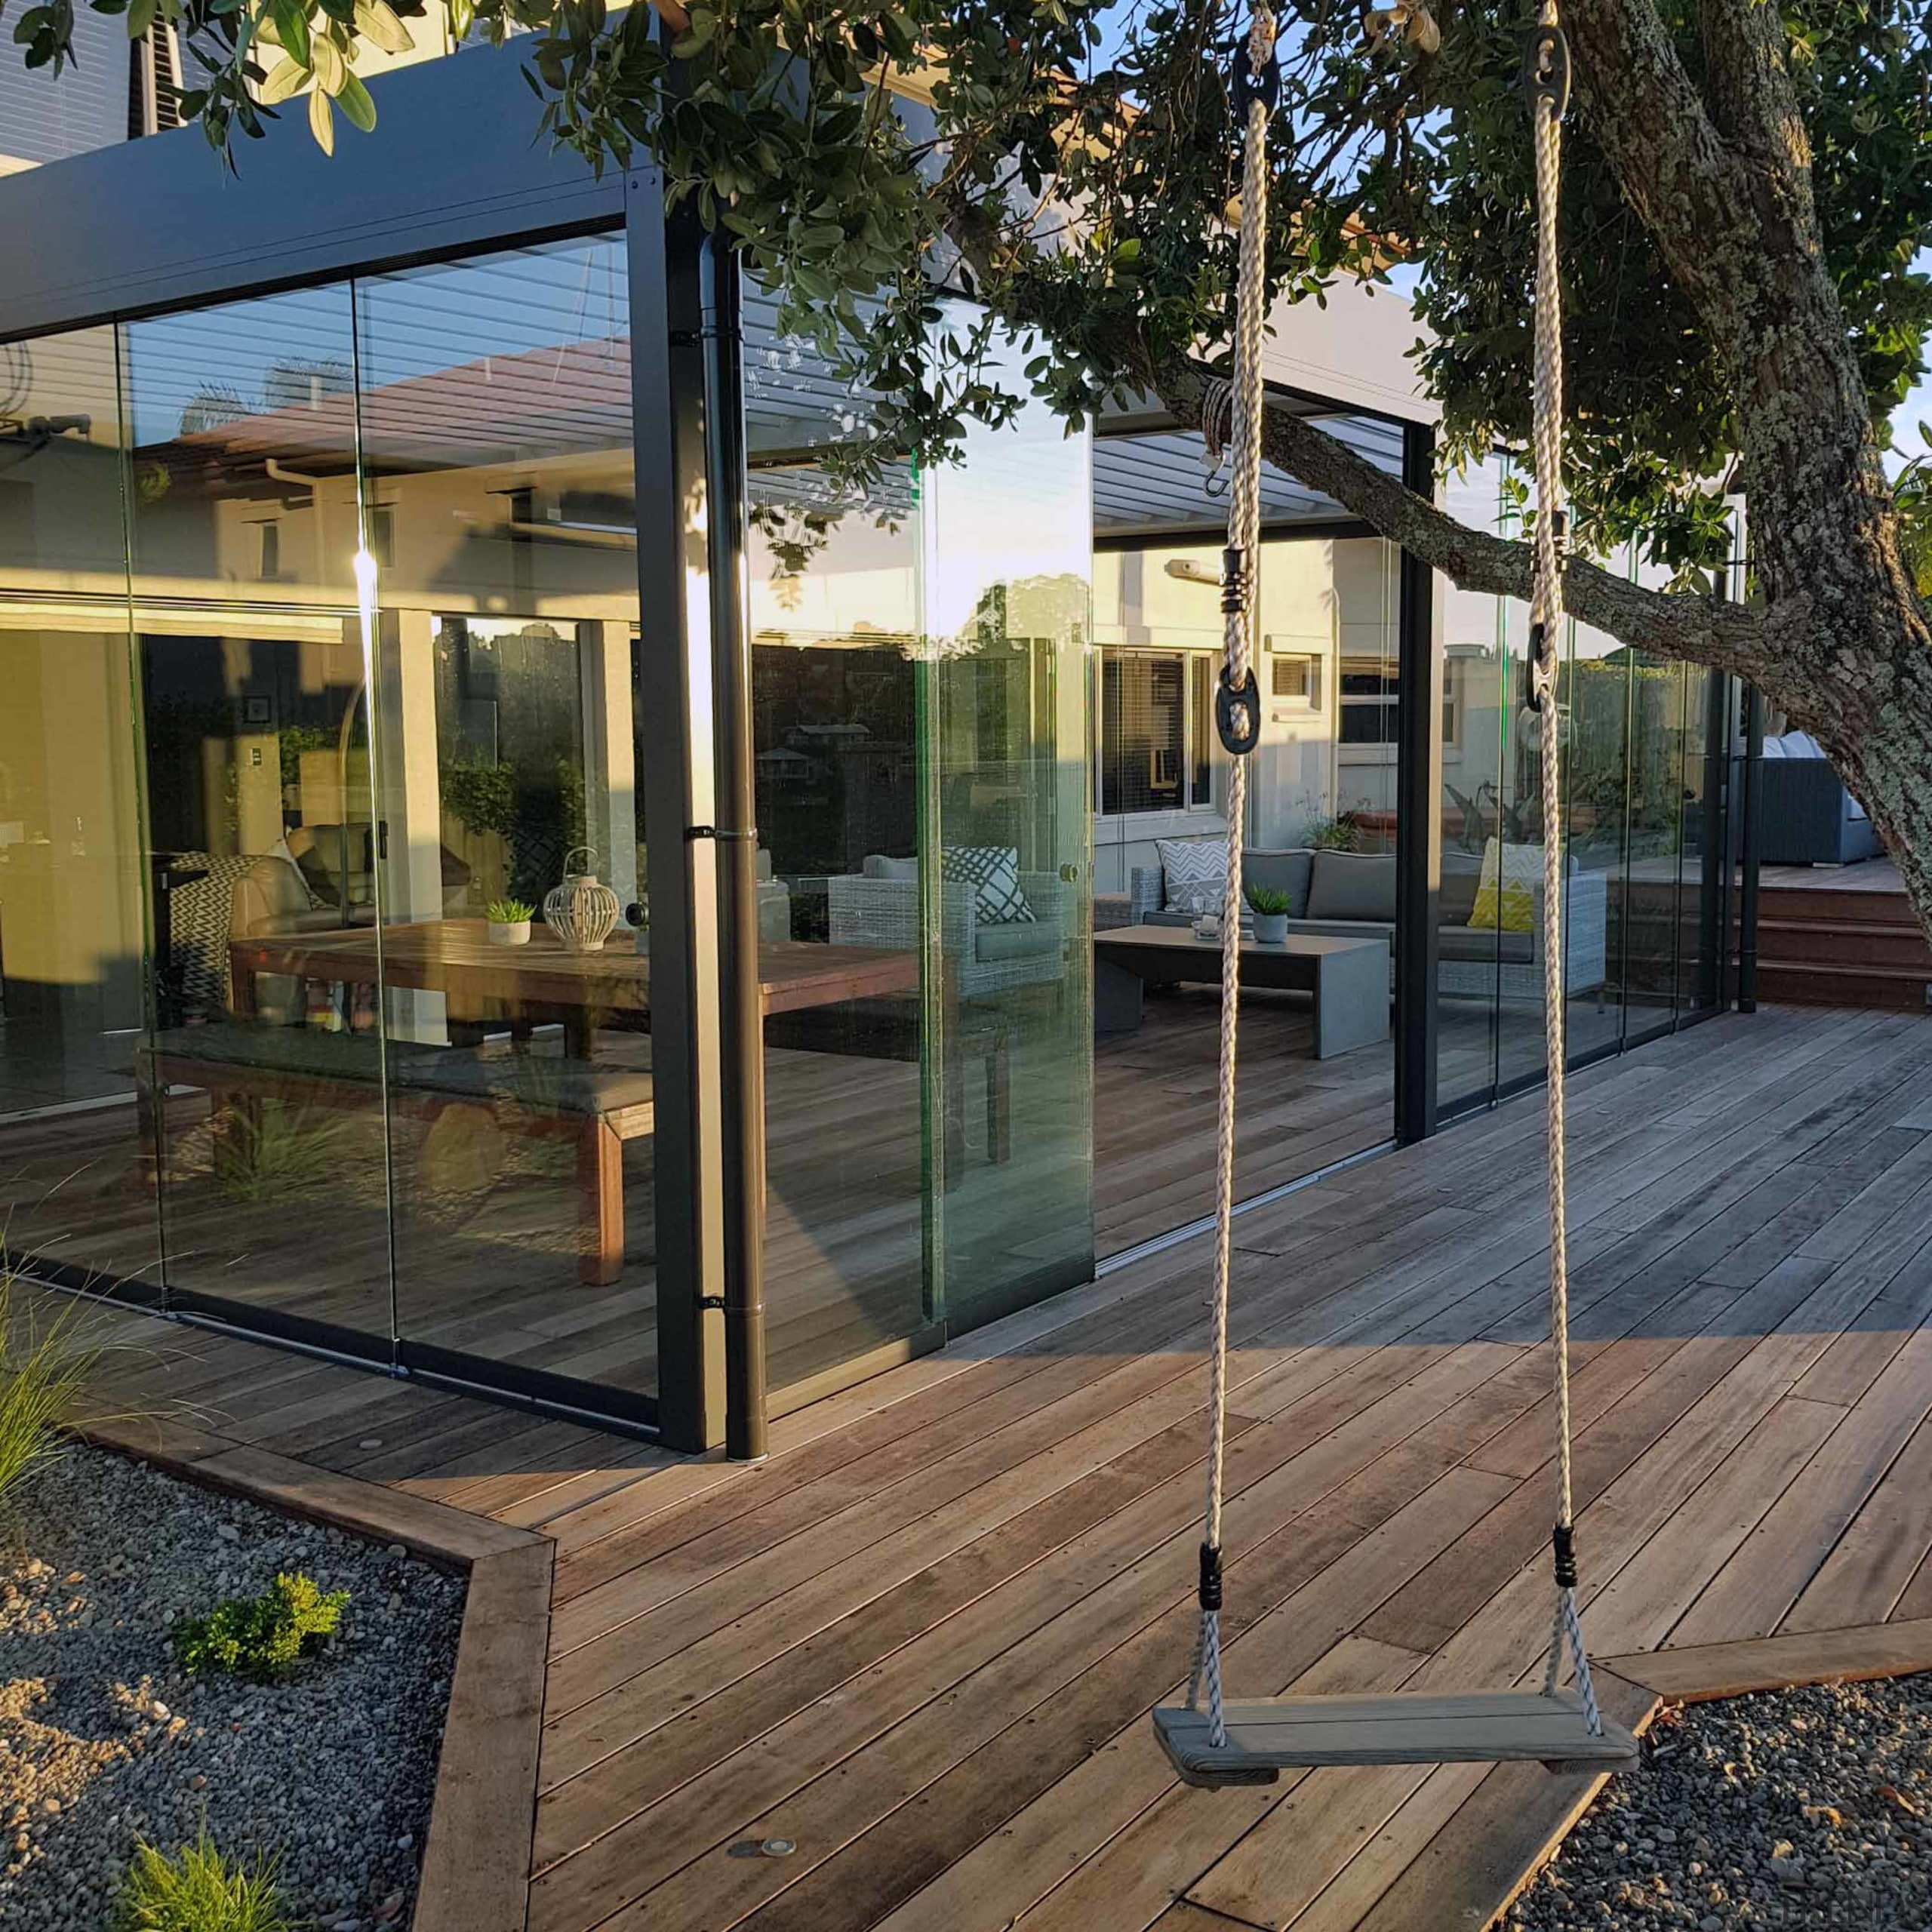 78580_louvretec-new-zealand-ltd_1557361106 - architecture | building | design | architecture, building, design, facade, glass, home, house, interior design, metal, property, real estate, reflection, roof, window, brown, black